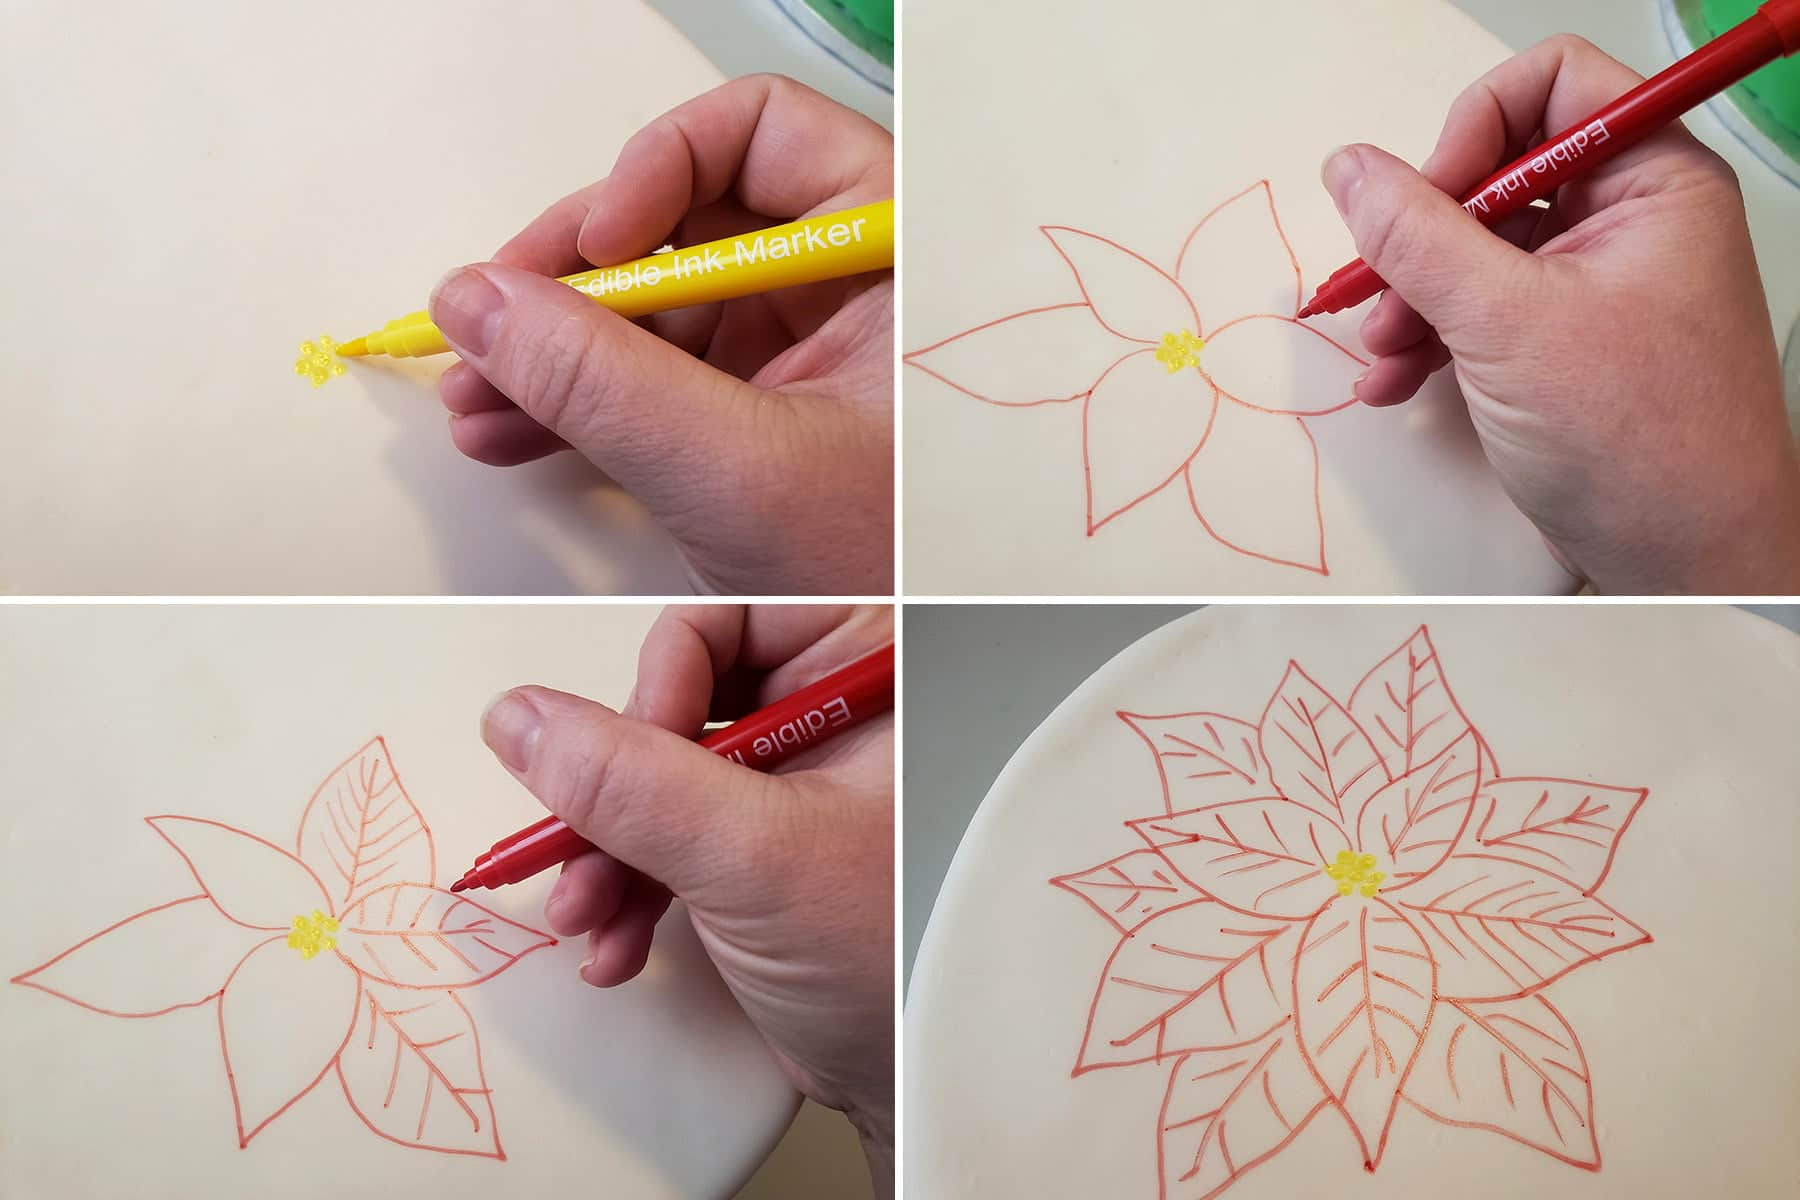 a 4 image collage picturing the first few steps of drawing poinsettias on a smooth white cake.